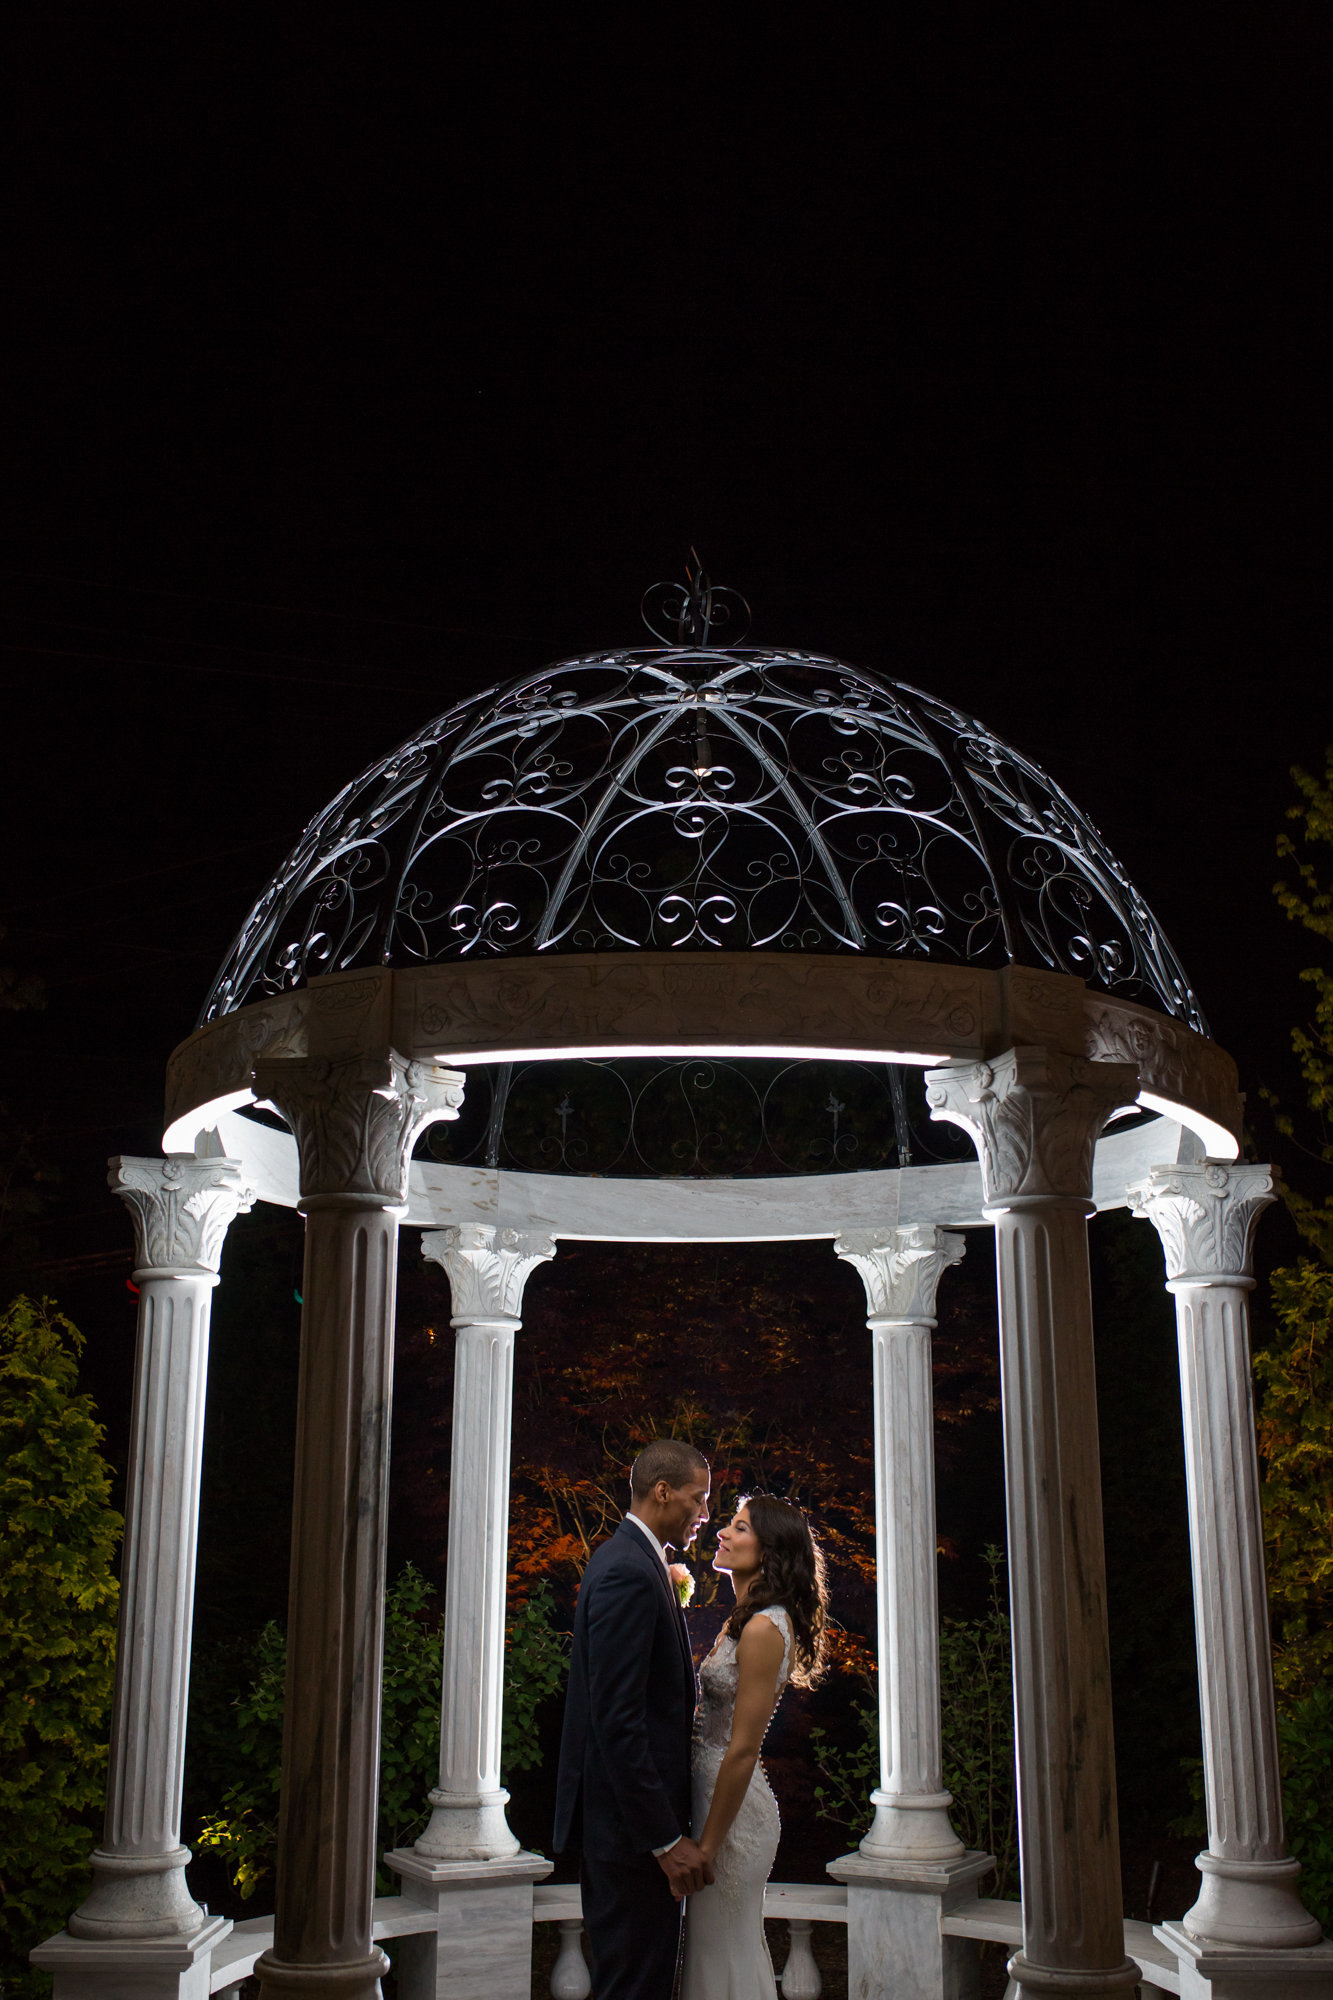 bride and groom under a gazebo at night at the waterfall in claymont delaware